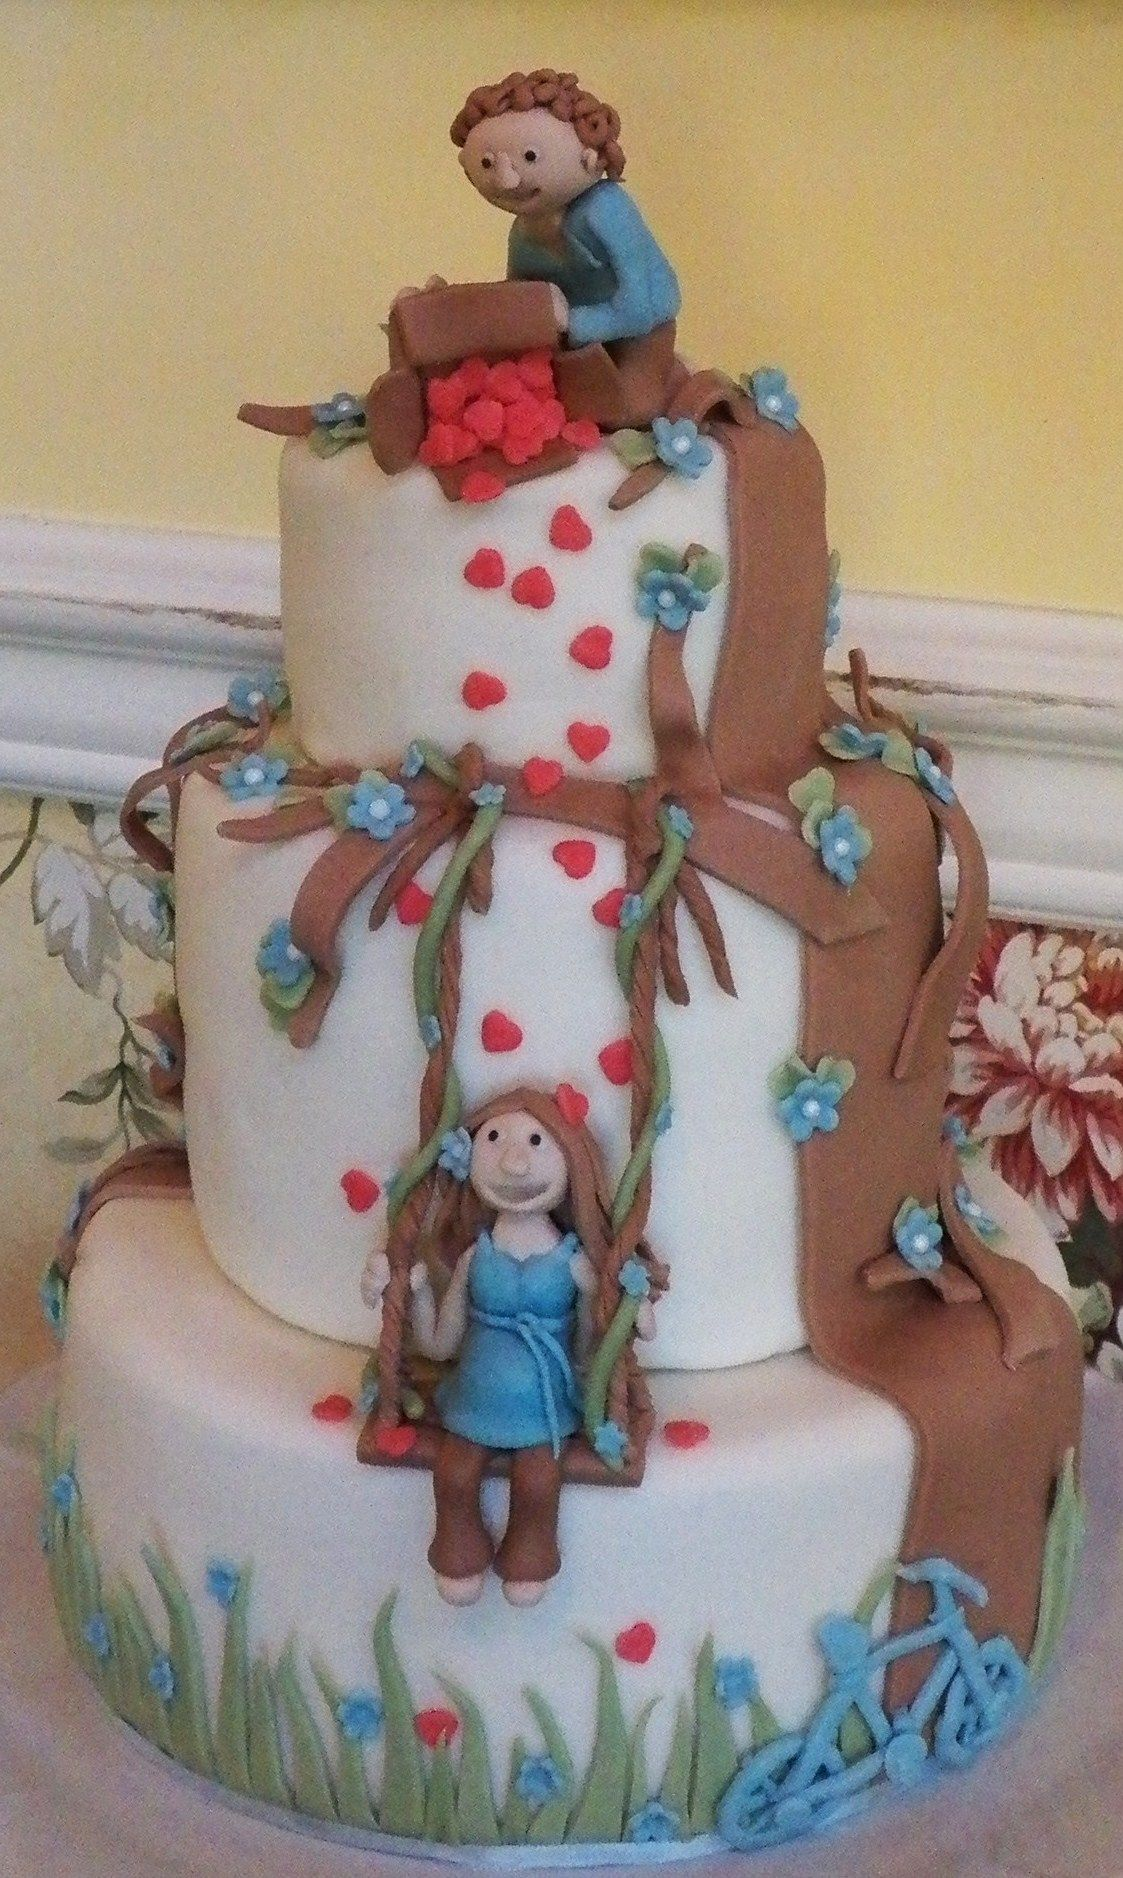 Custom Baby Shower Cake: Pregnant Mommy on a swing. Daddy showering her with love (hearts falling out of a box) Their first date was riding bicycles, they drove on a tandem bicycle at their wedding so the baby shower had to include a bicycle :)